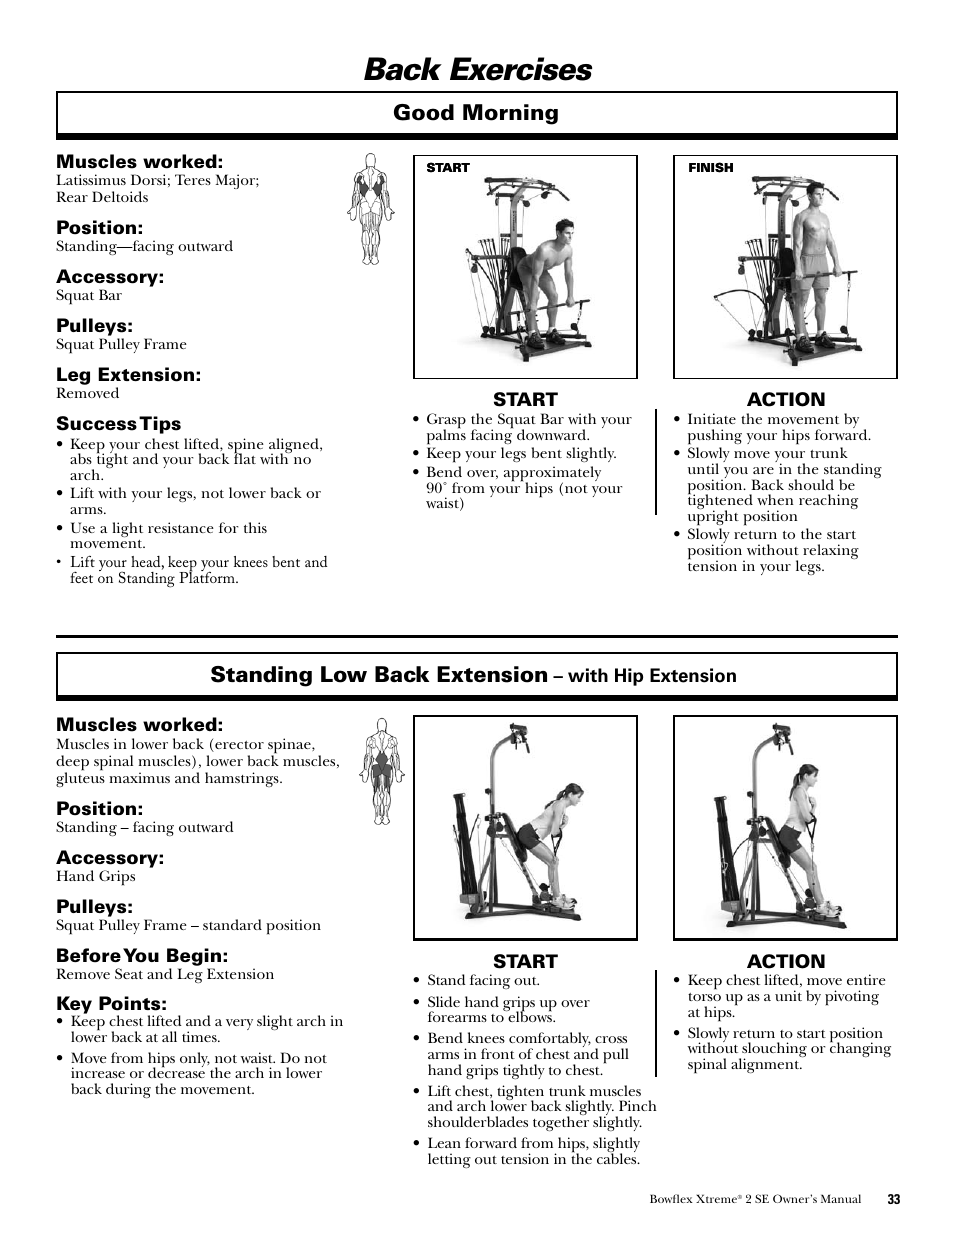 Back Exercises Standing Low Back Extension Good Morning Bowflex